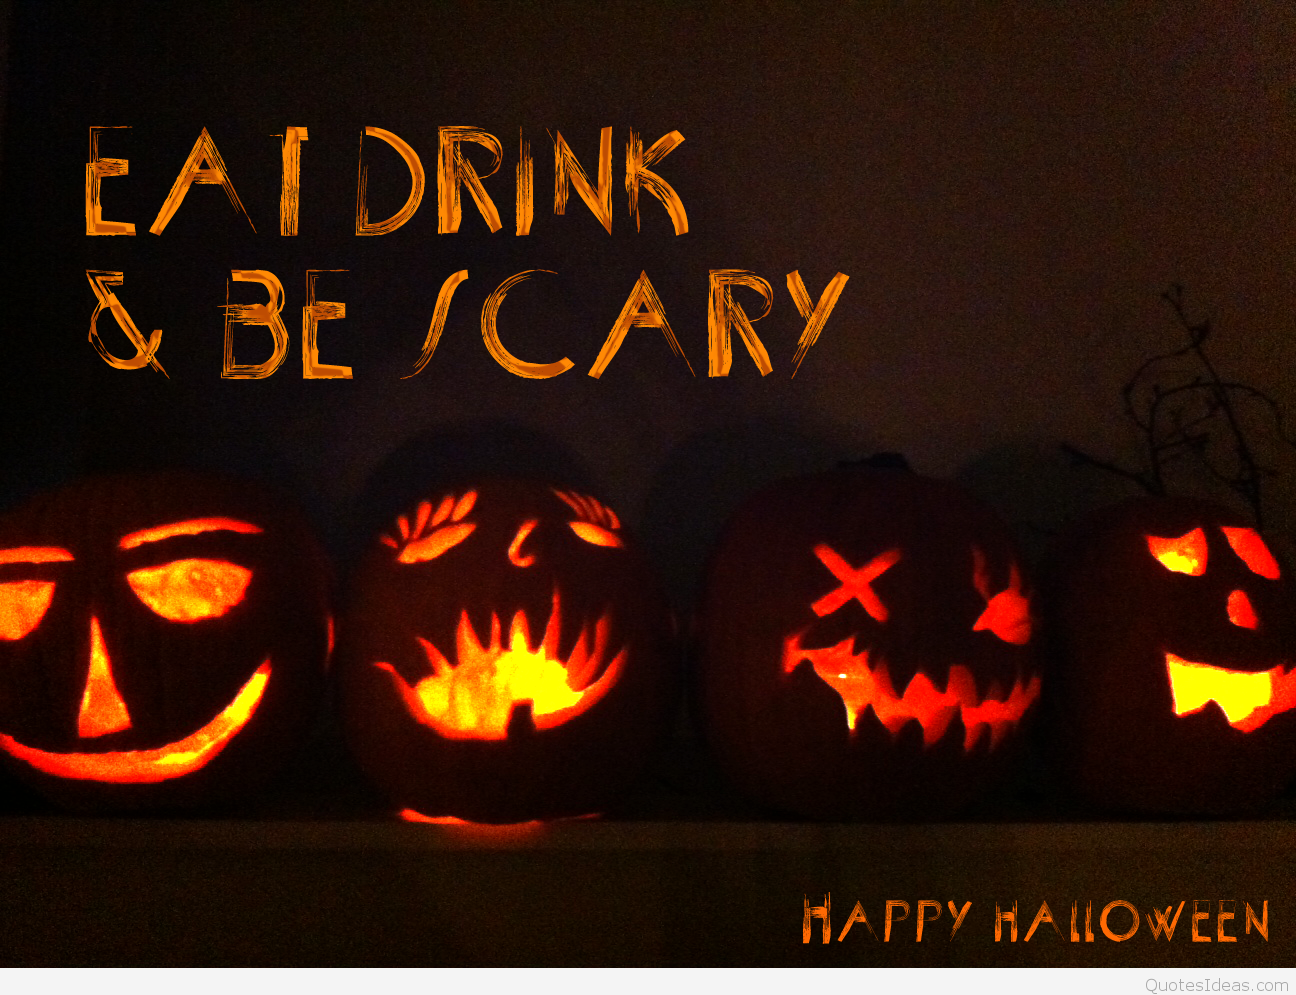 eat drink & be scary happy halloween